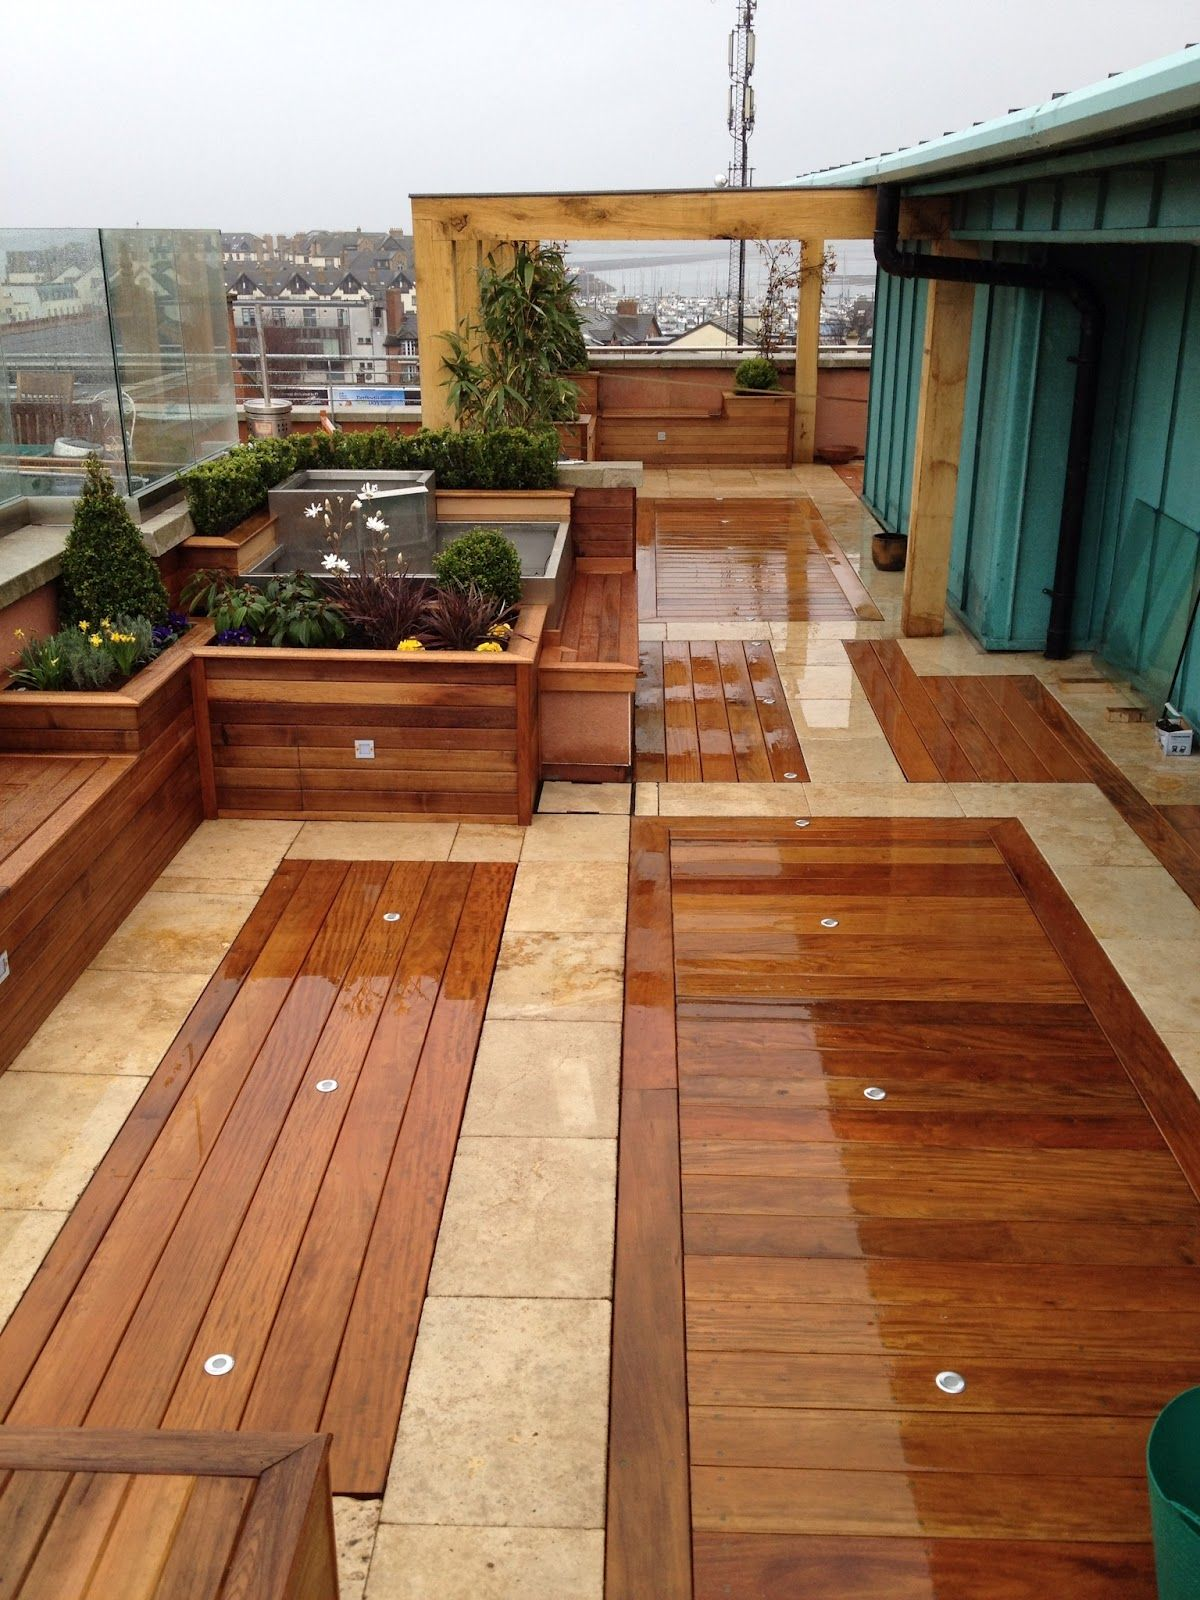 Garden Design Decking Ideas roof wooden decking with smakk garden in malahide, decoration